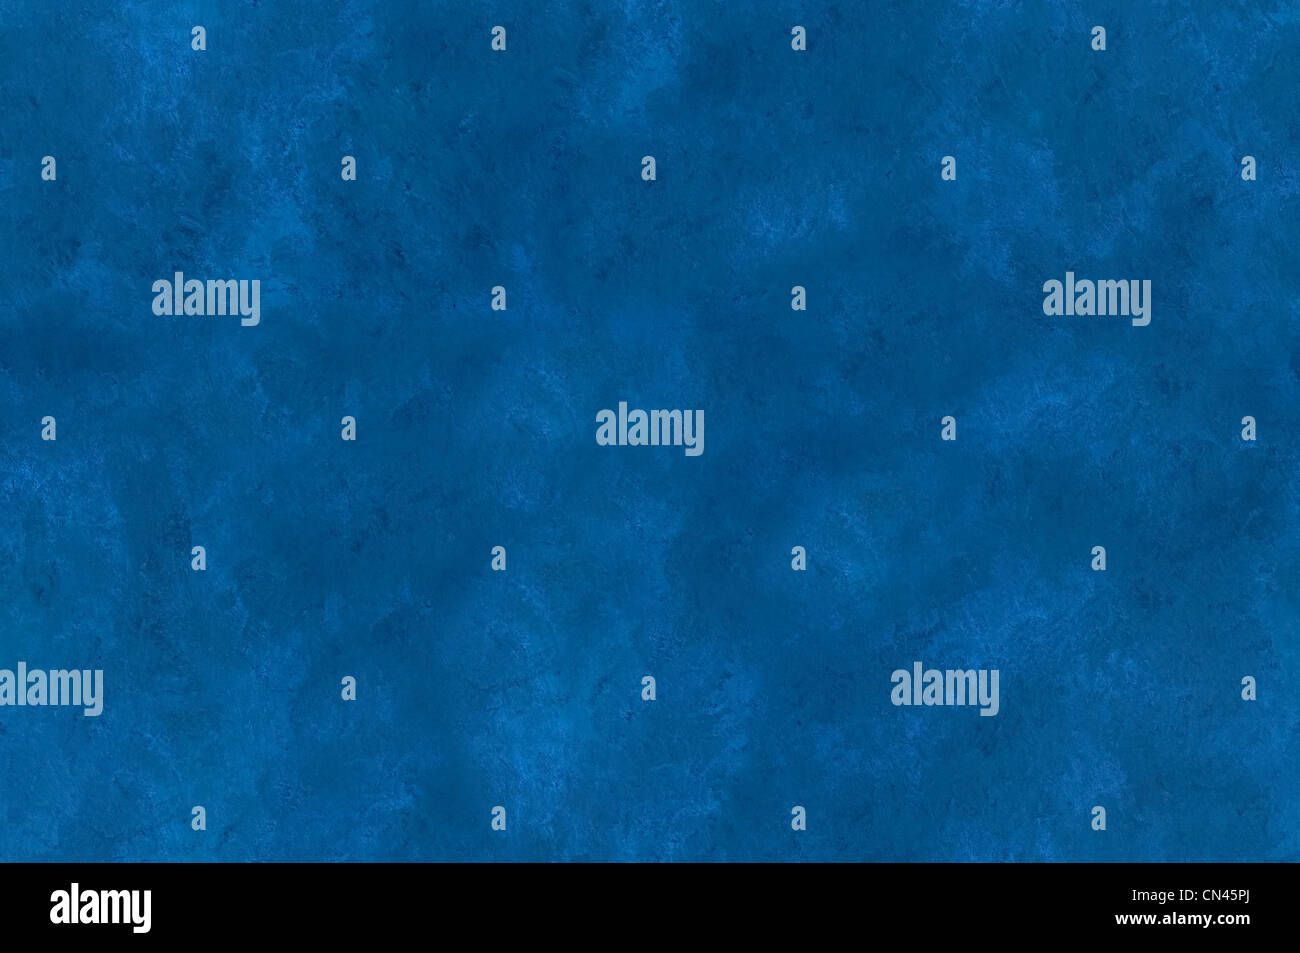 Blue mottled canvas background seamlessly tileable - Stock Image